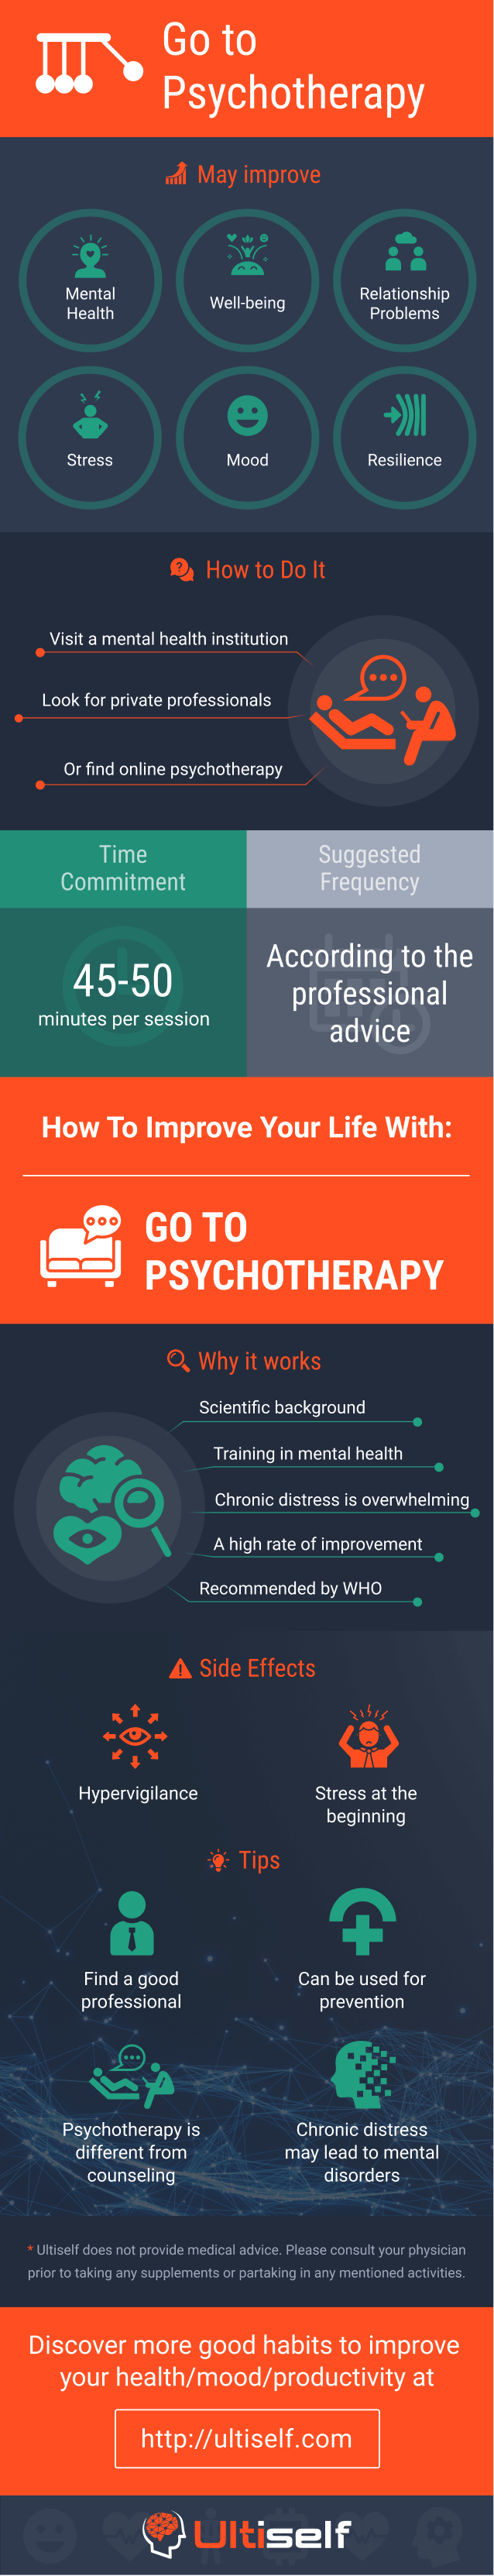 Go to Psychotherapy infographic